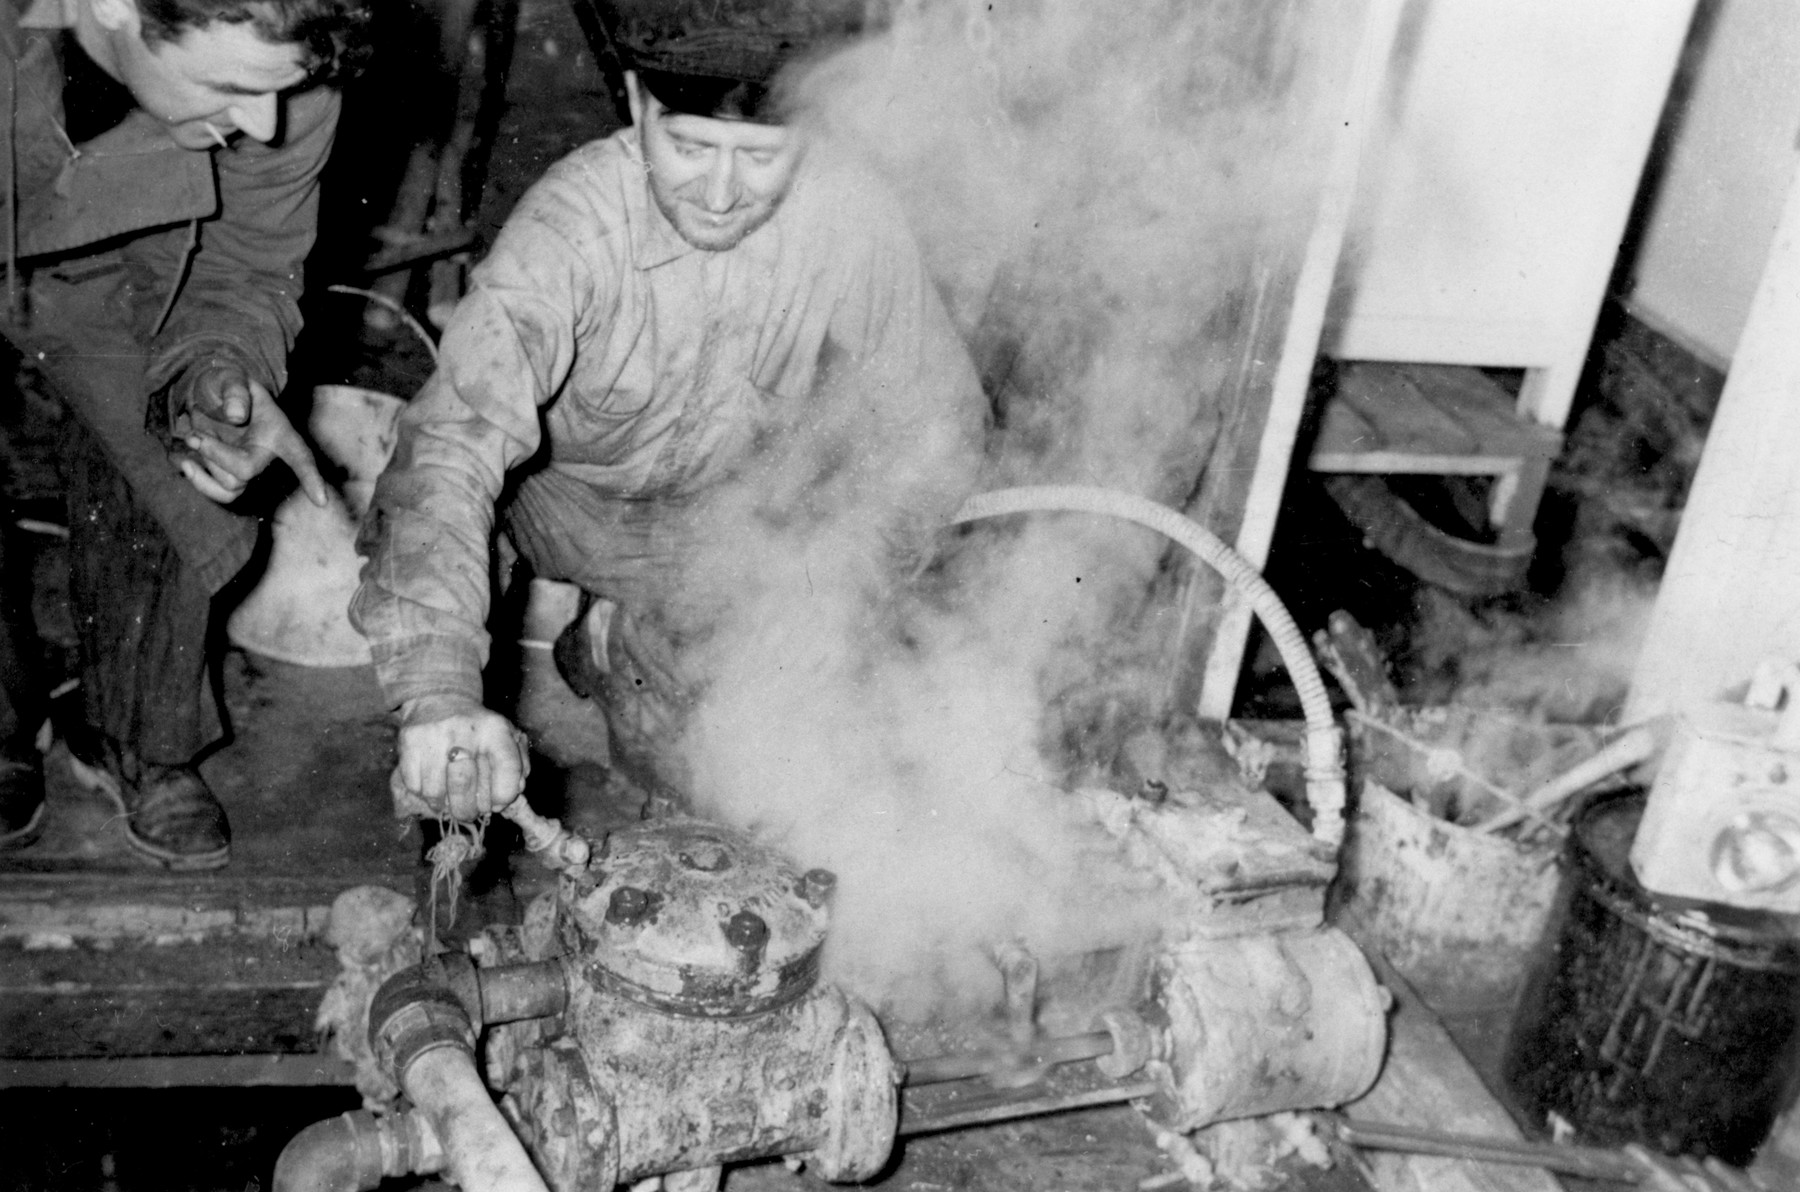 Engineer Frank Stanczak (right) and Michael Weiss attempt to keep the sump pump in operation in the engine room of the President Warfield after the gale that nearly sank the ship during its first attempt to cross the Atlantic Ocean.  The pump later exploded and several people were burned.